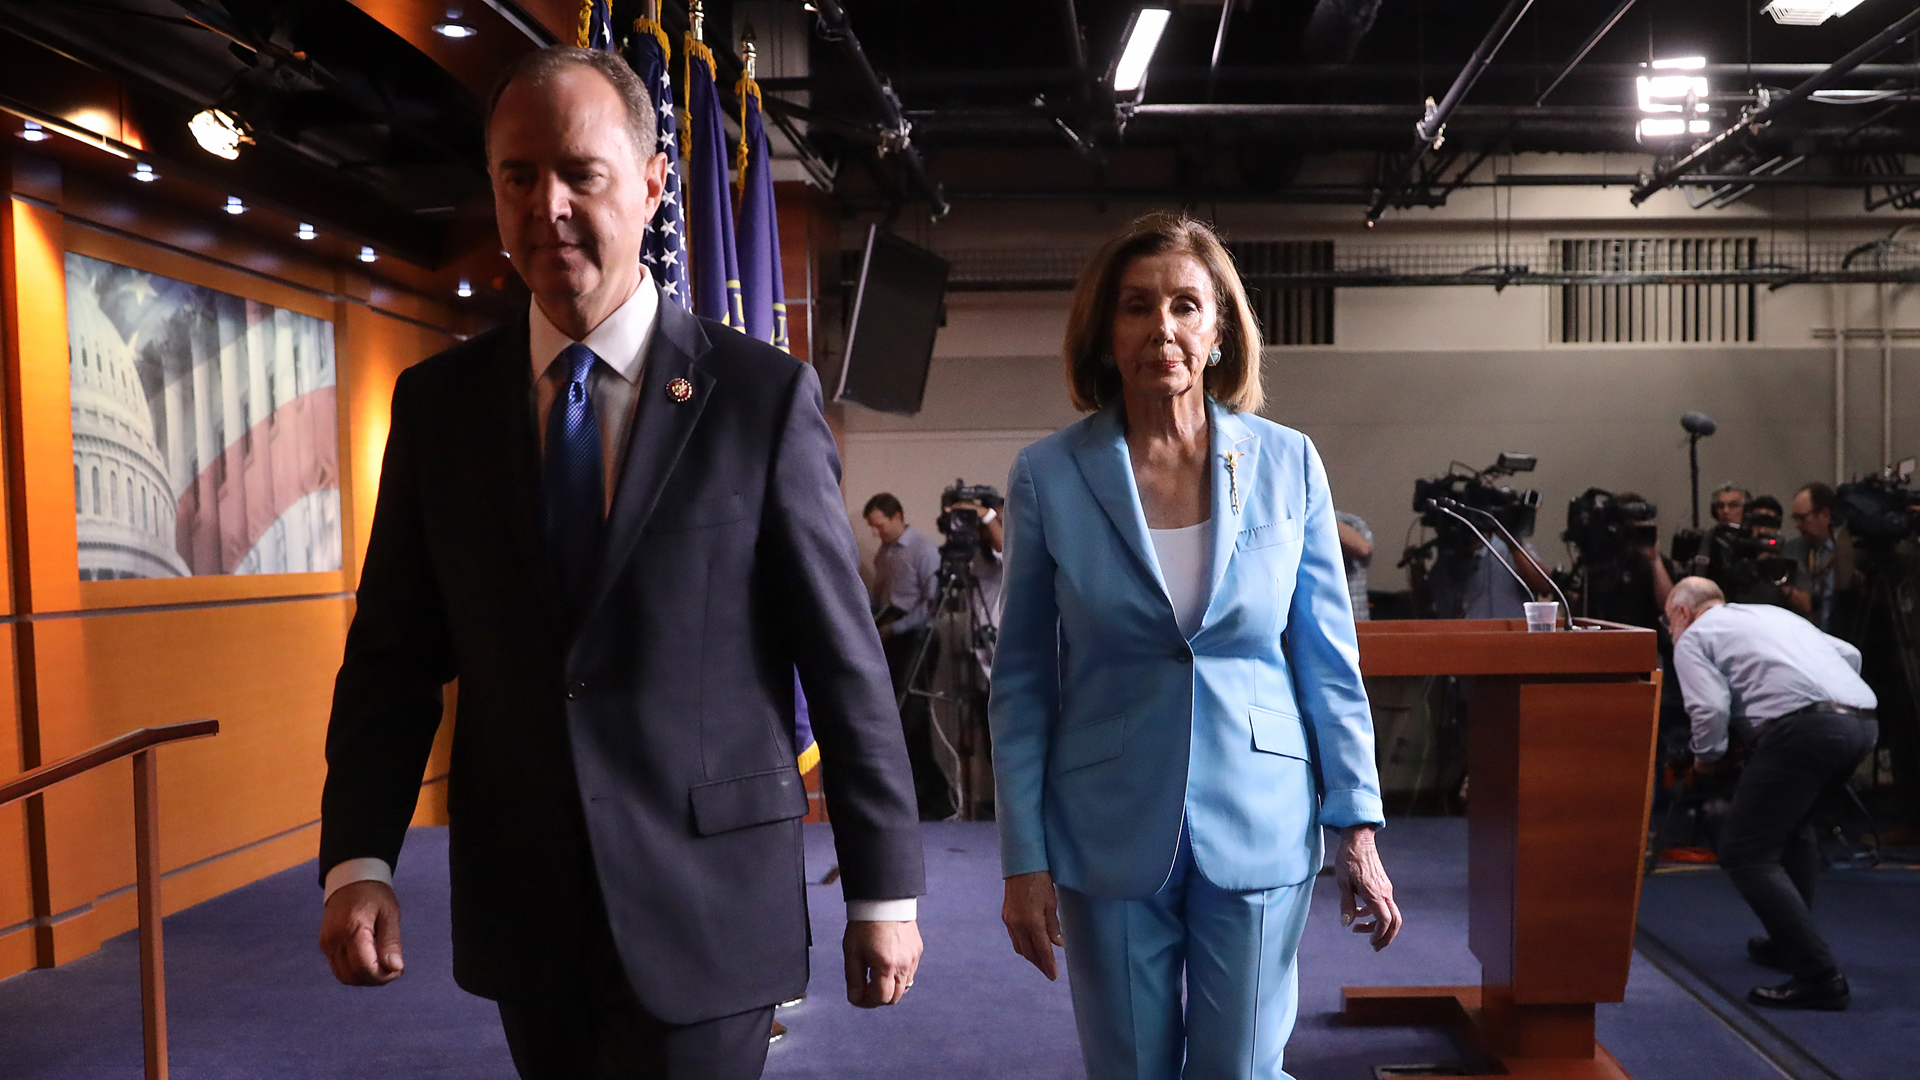 Speaker of the House Nancy Pelosi (D-CA) and House Select Committee on Intelligence Chairman Rep. Adam Shiff (D-CA) depart a press conference at the U.S. Capitol October 2, 2019. (Credit: Win McNamee/Getty Images)